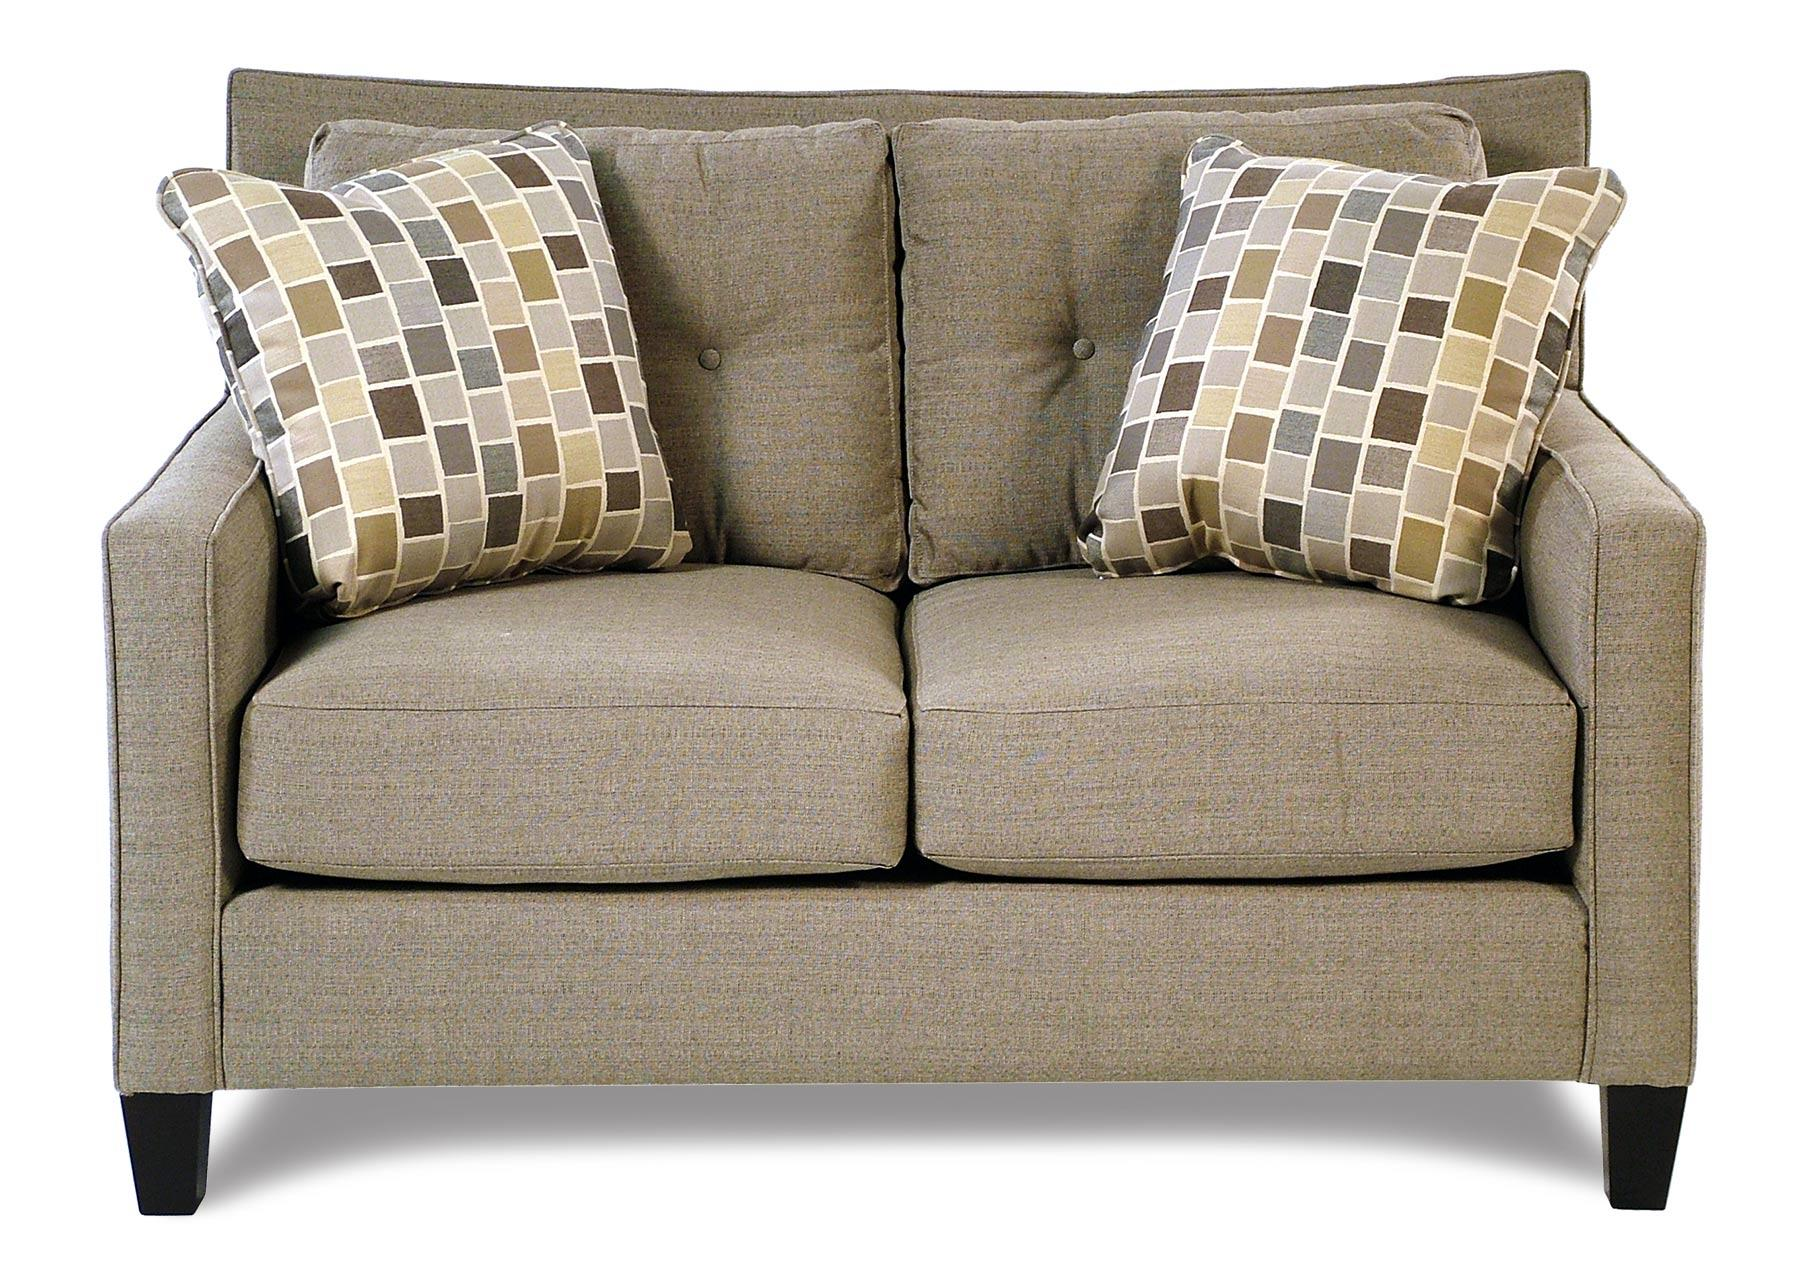 Broyhill Furniture Stonehill Modern Tufted Loveseat - Item Number: S6018-1-8319-0000